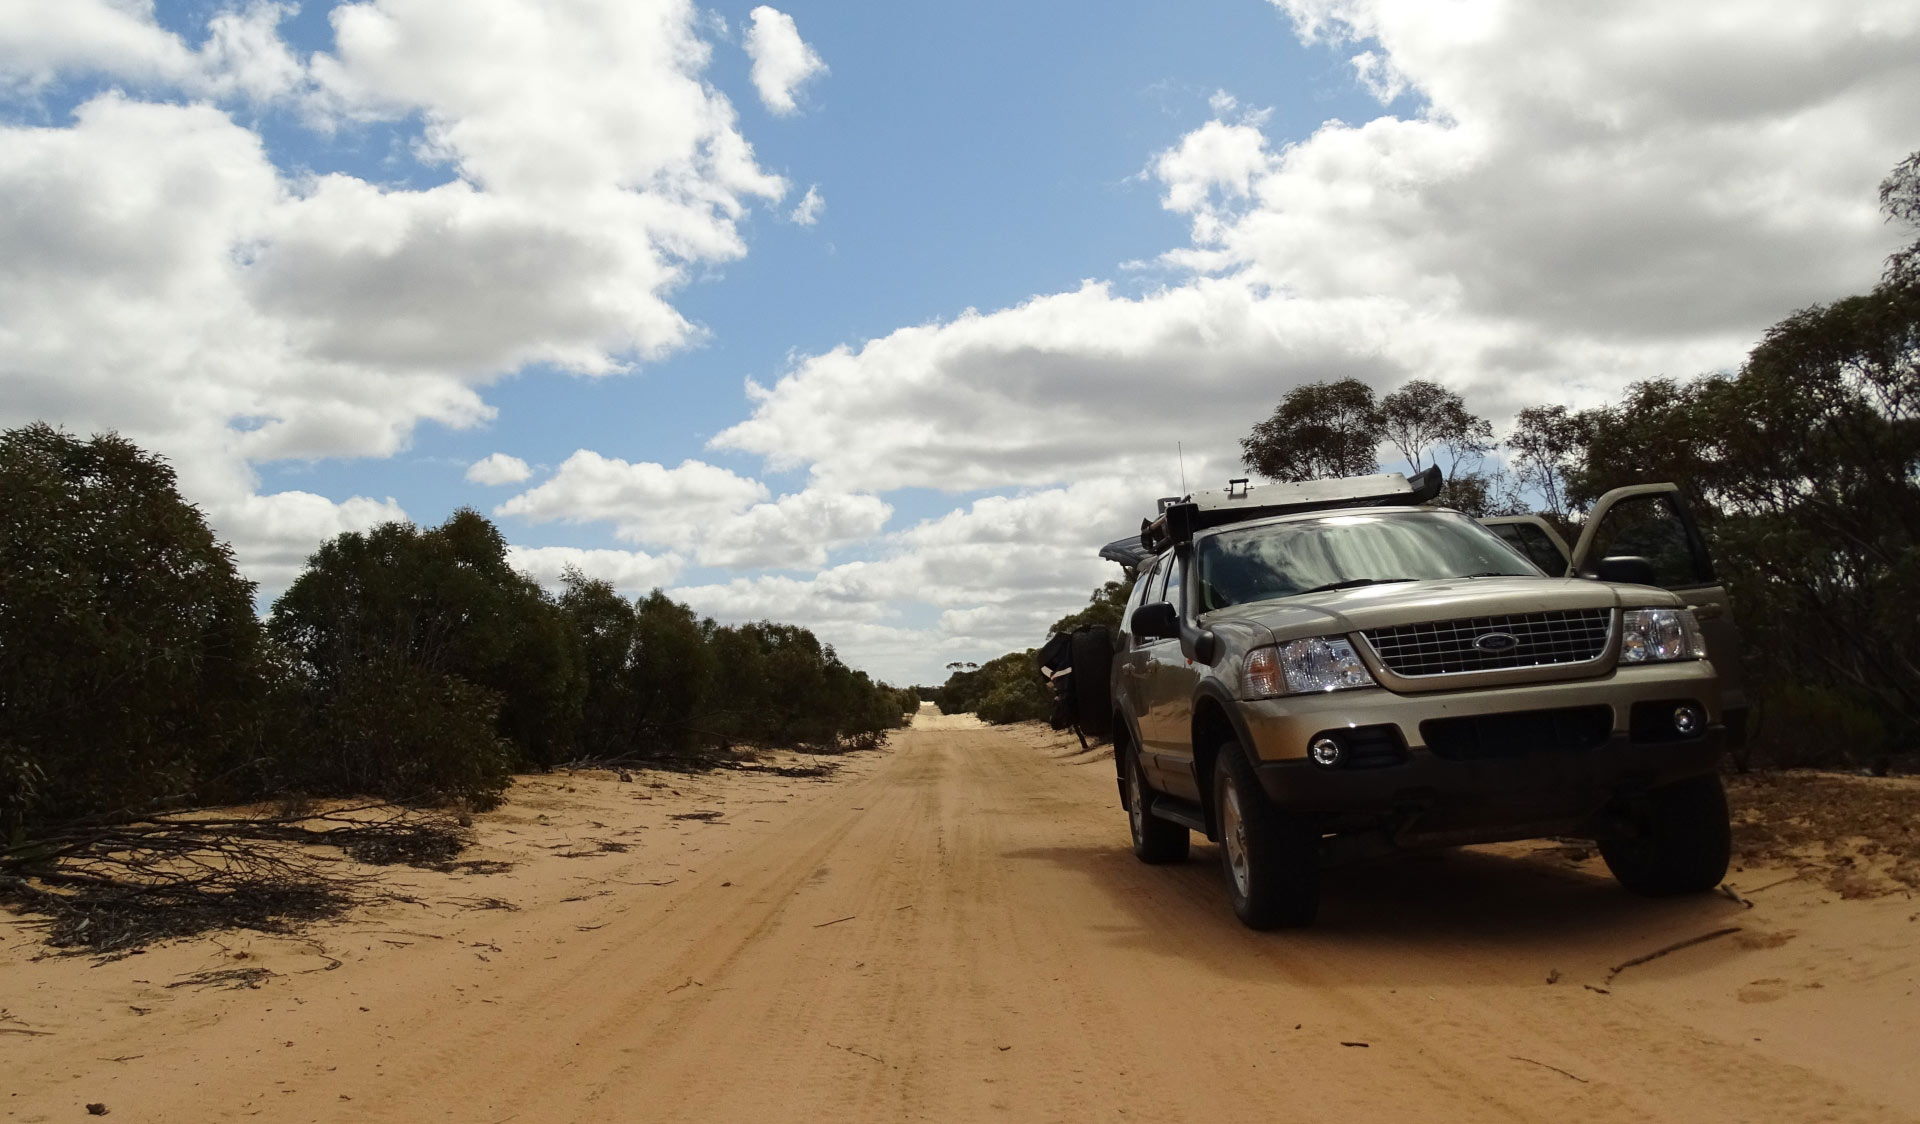 A four wheel drive is parked to the side of a a sandy track at Wyperfeld National Park with a cloudy sky overhead.